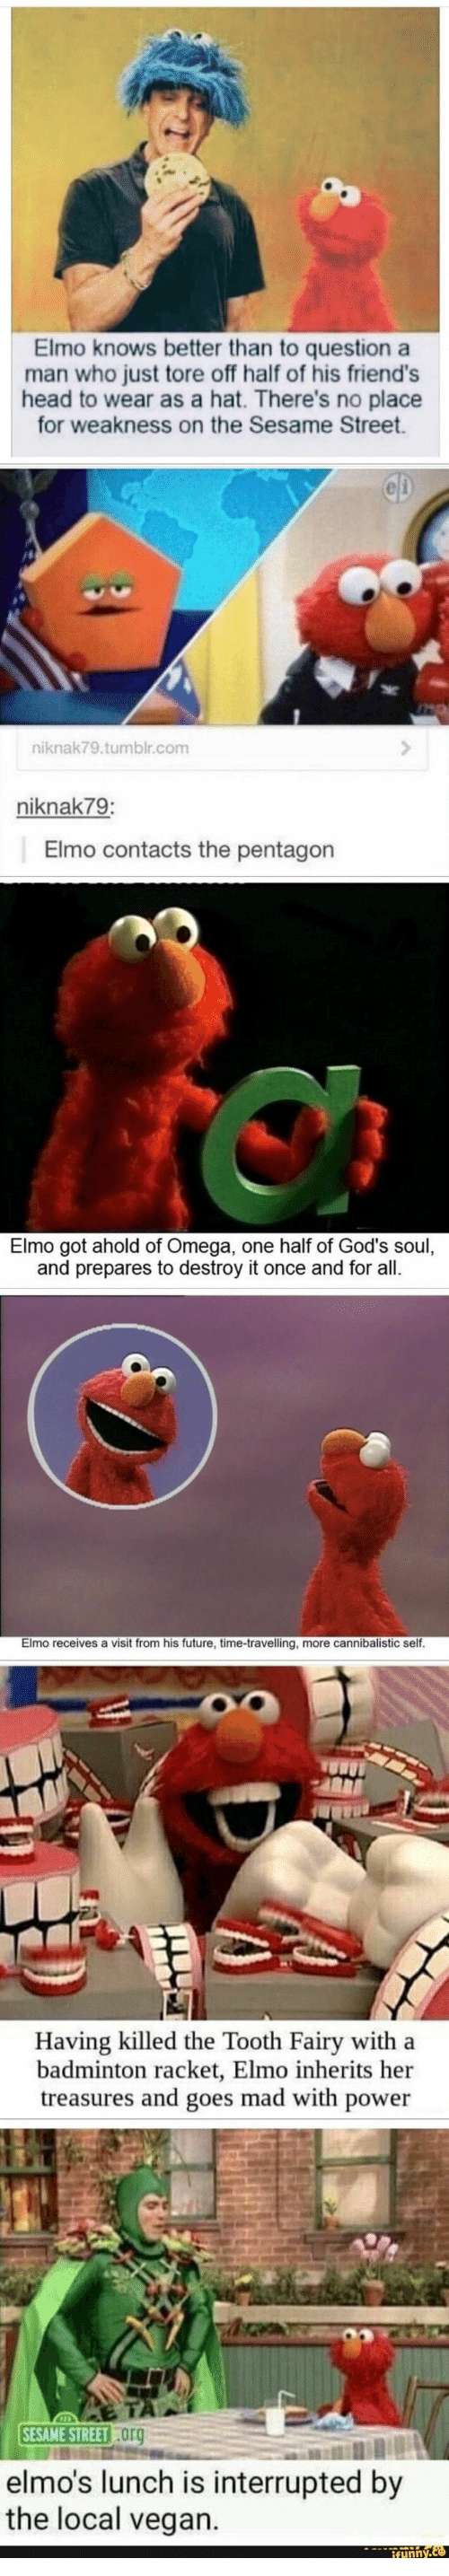 Elmo: Elmo knows better than to question a  man who just tore off half of his friend's  head to wear as a hat. There's no place  for weakness on the Sesame Street  CD  niknak79.tumblr.com  niknak79:  Elmo contacts the pentagon  Elmo got ahold of Omega, one half of God's soul,  and prepares to destroy it once and for all.  Elmo receives a visit from his future, time-travelling, more cannibalistic self.  Having killed the Tooth Fairy with a  badminton racket, Elmo inherits her  treasures and goes mad with power  SESAME STREET Org  elmo's lunch is interrupted by  the local vegan.  ifynny.co